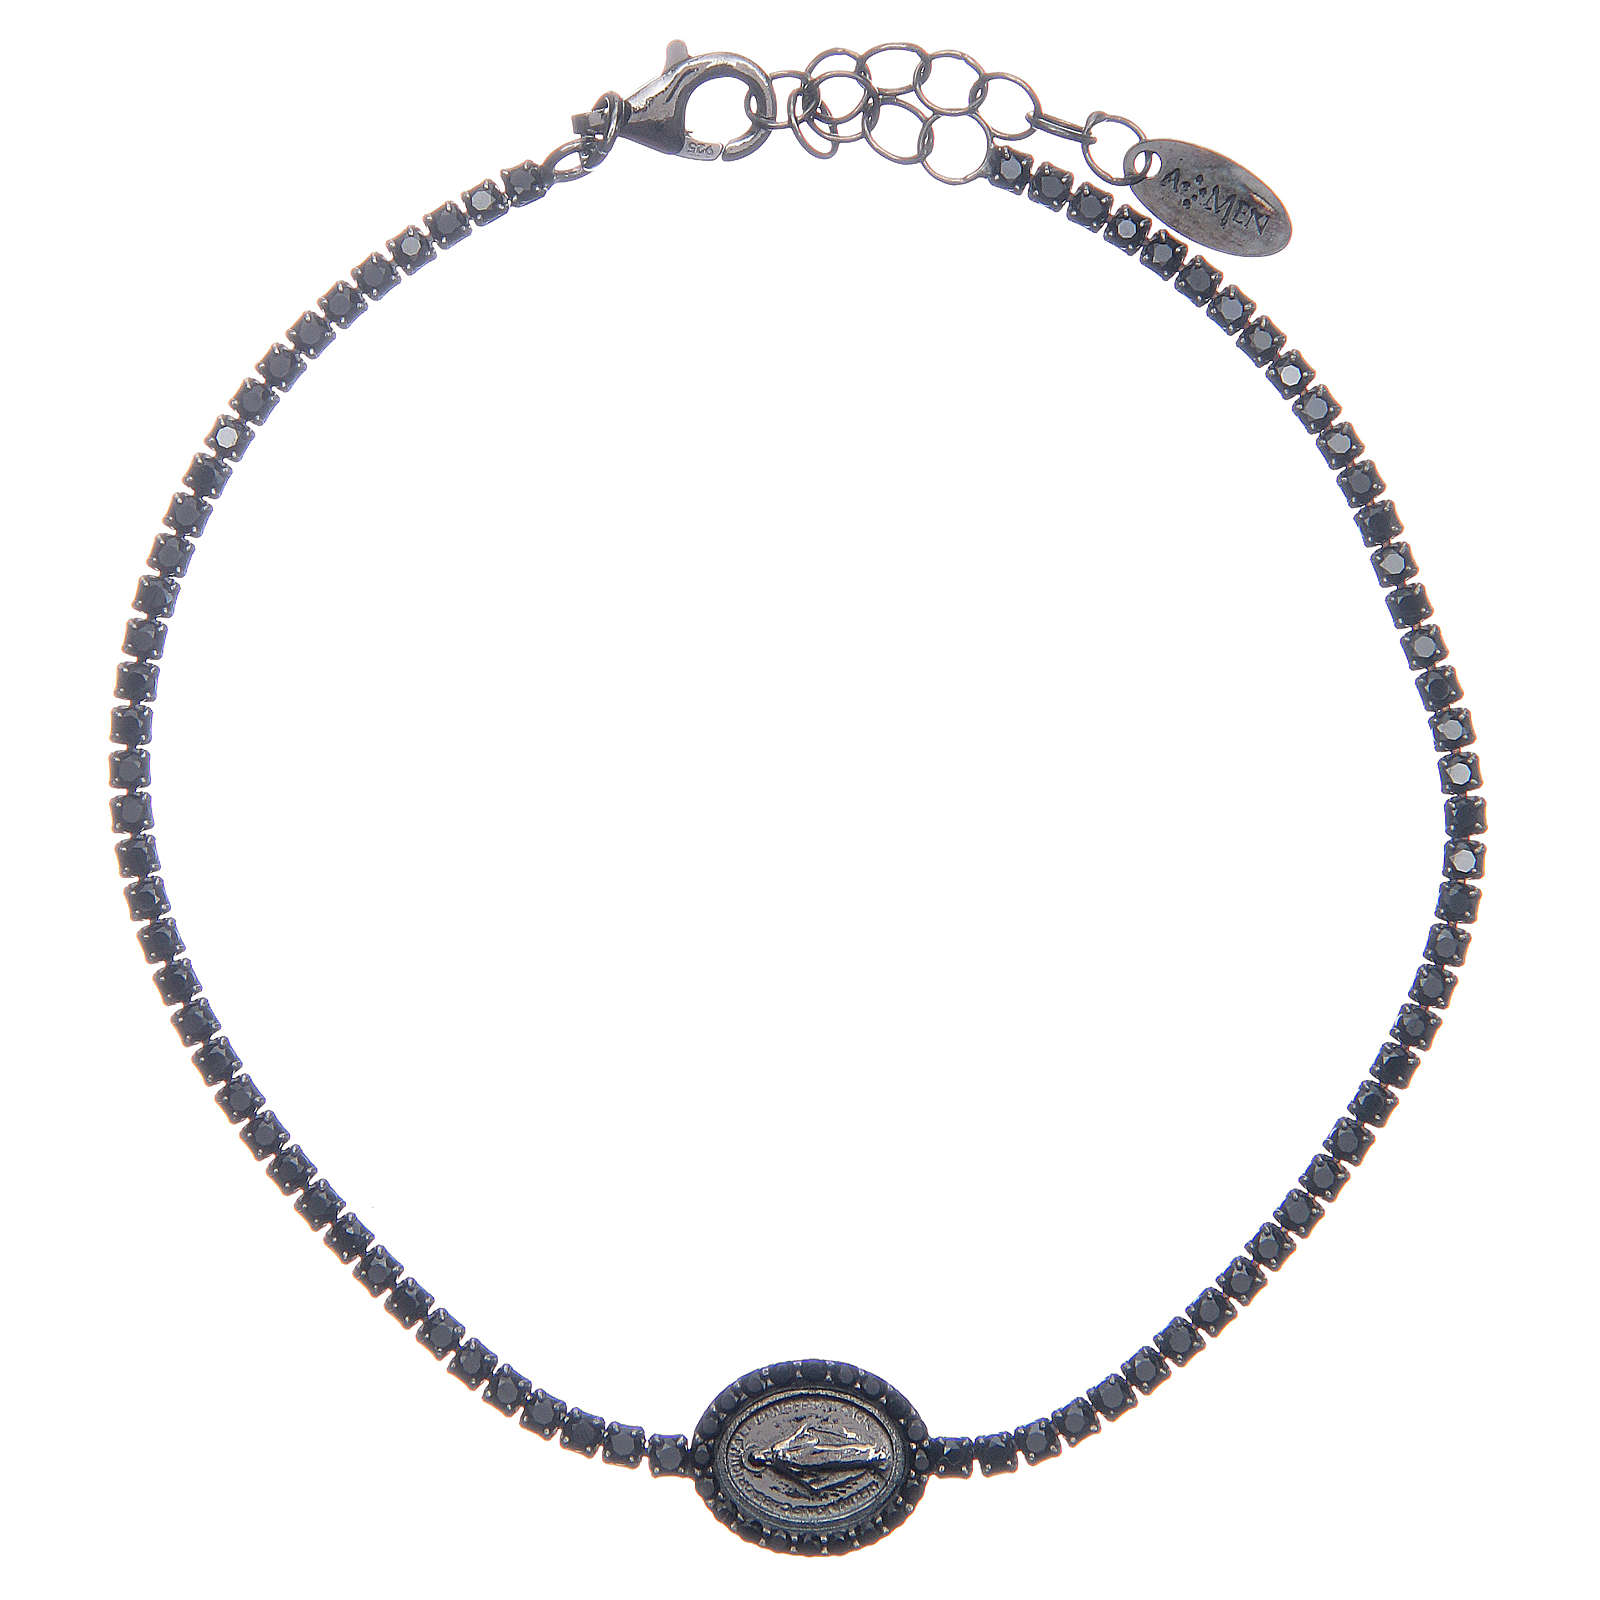 Amen tennis bracelet with black zircons and Miraculous medal 4